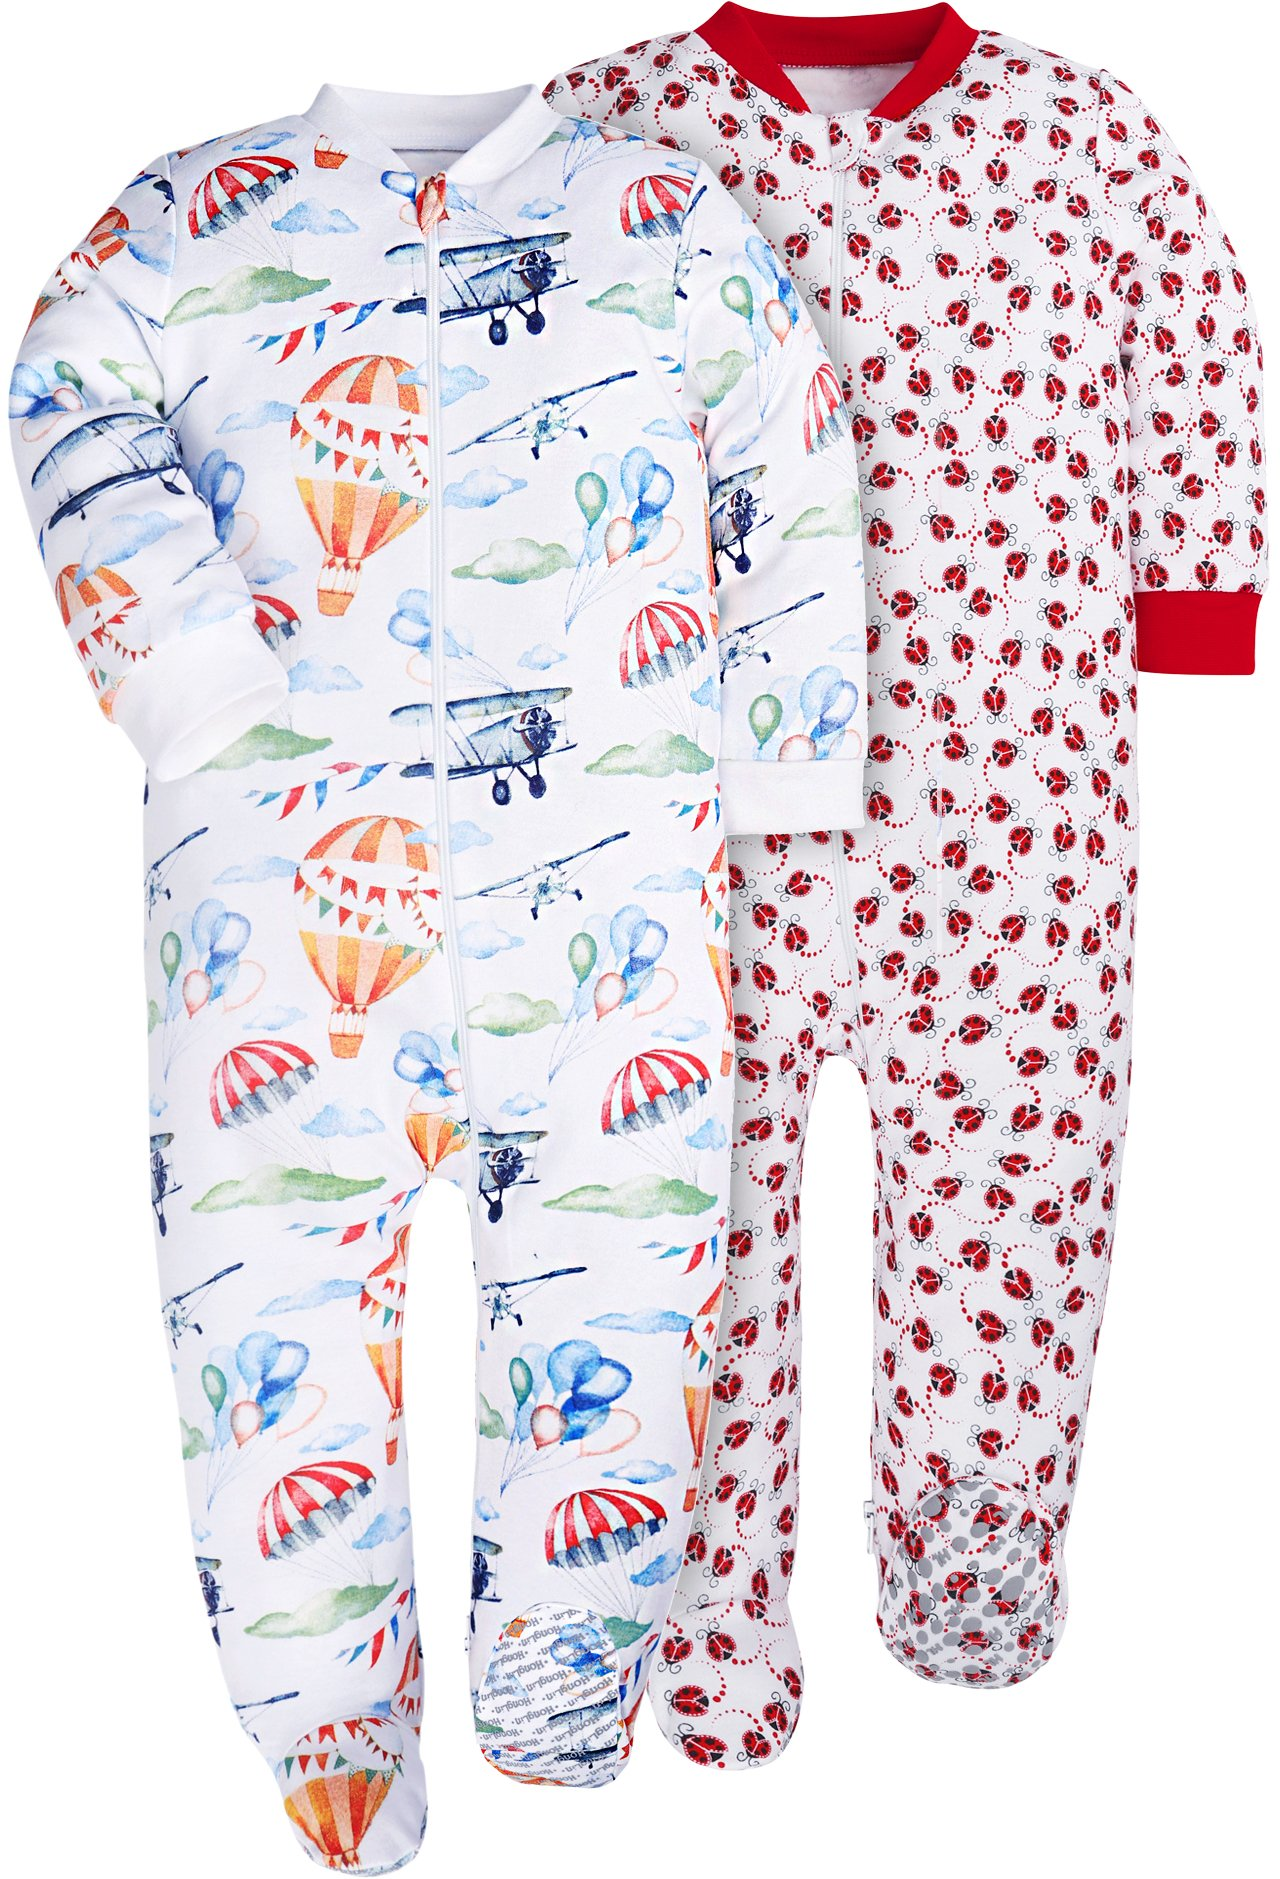 HONGLIN Baby Girls Bodysuits Footies 2-Pack 100% Cotton Non-Slipping Sole (2-Pack Beetle/Hoot Balloon, 18-24 Months)